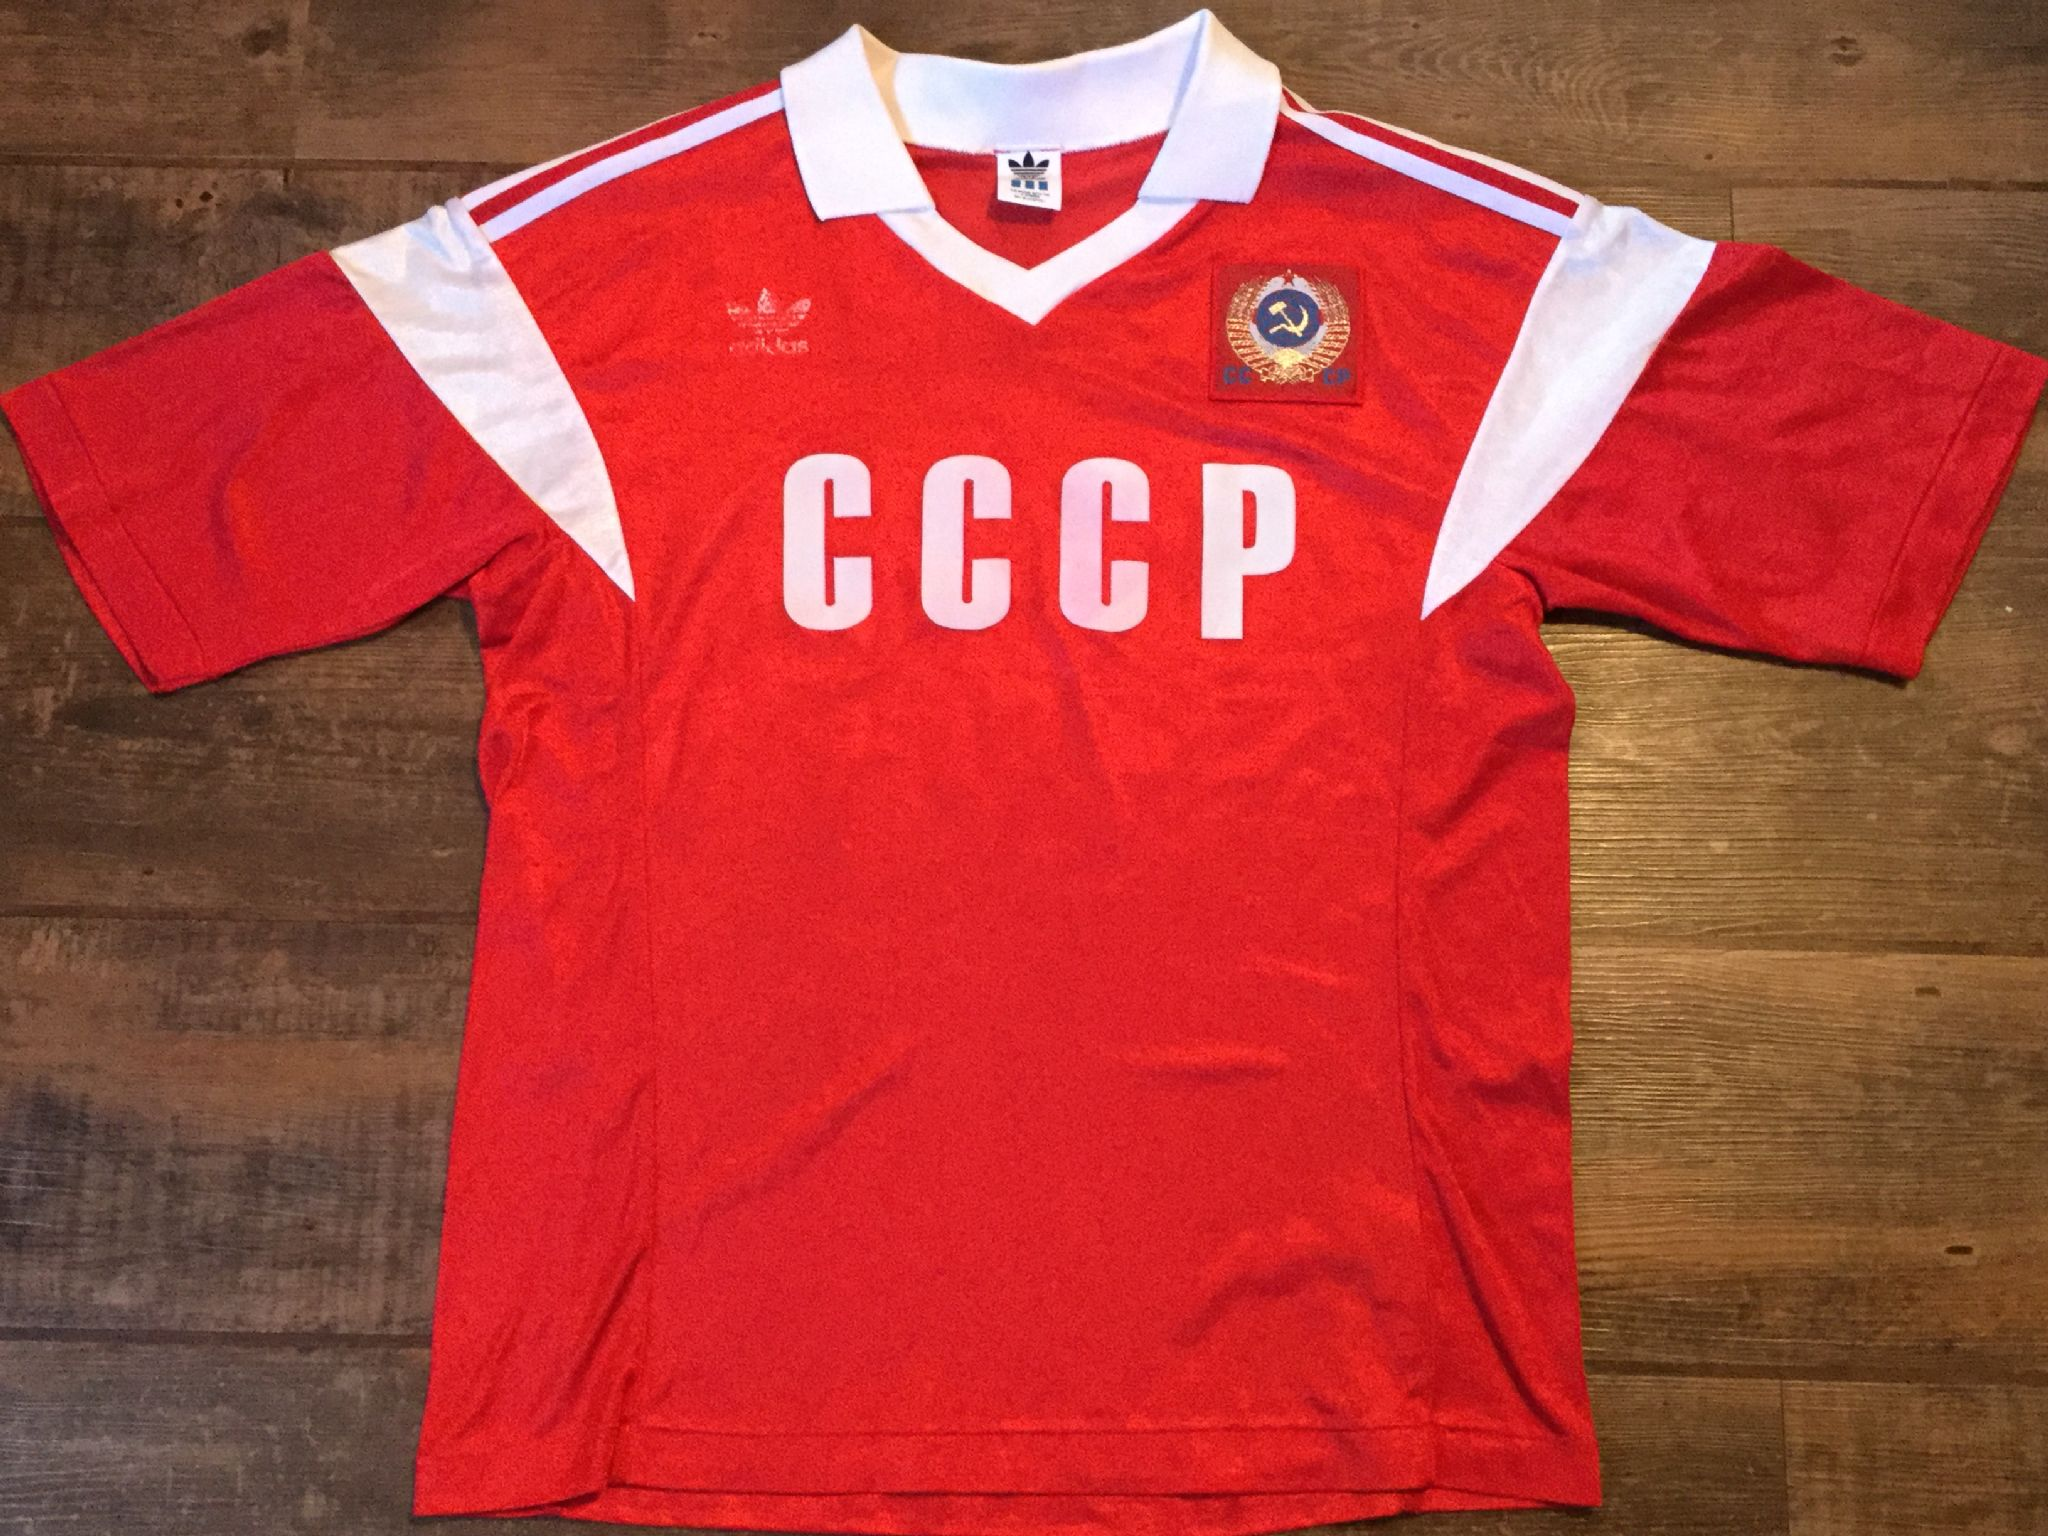 9b92a59e333 Global Classic Football Shirts | 1987 USSR Vintage Old Soccer Jerseys